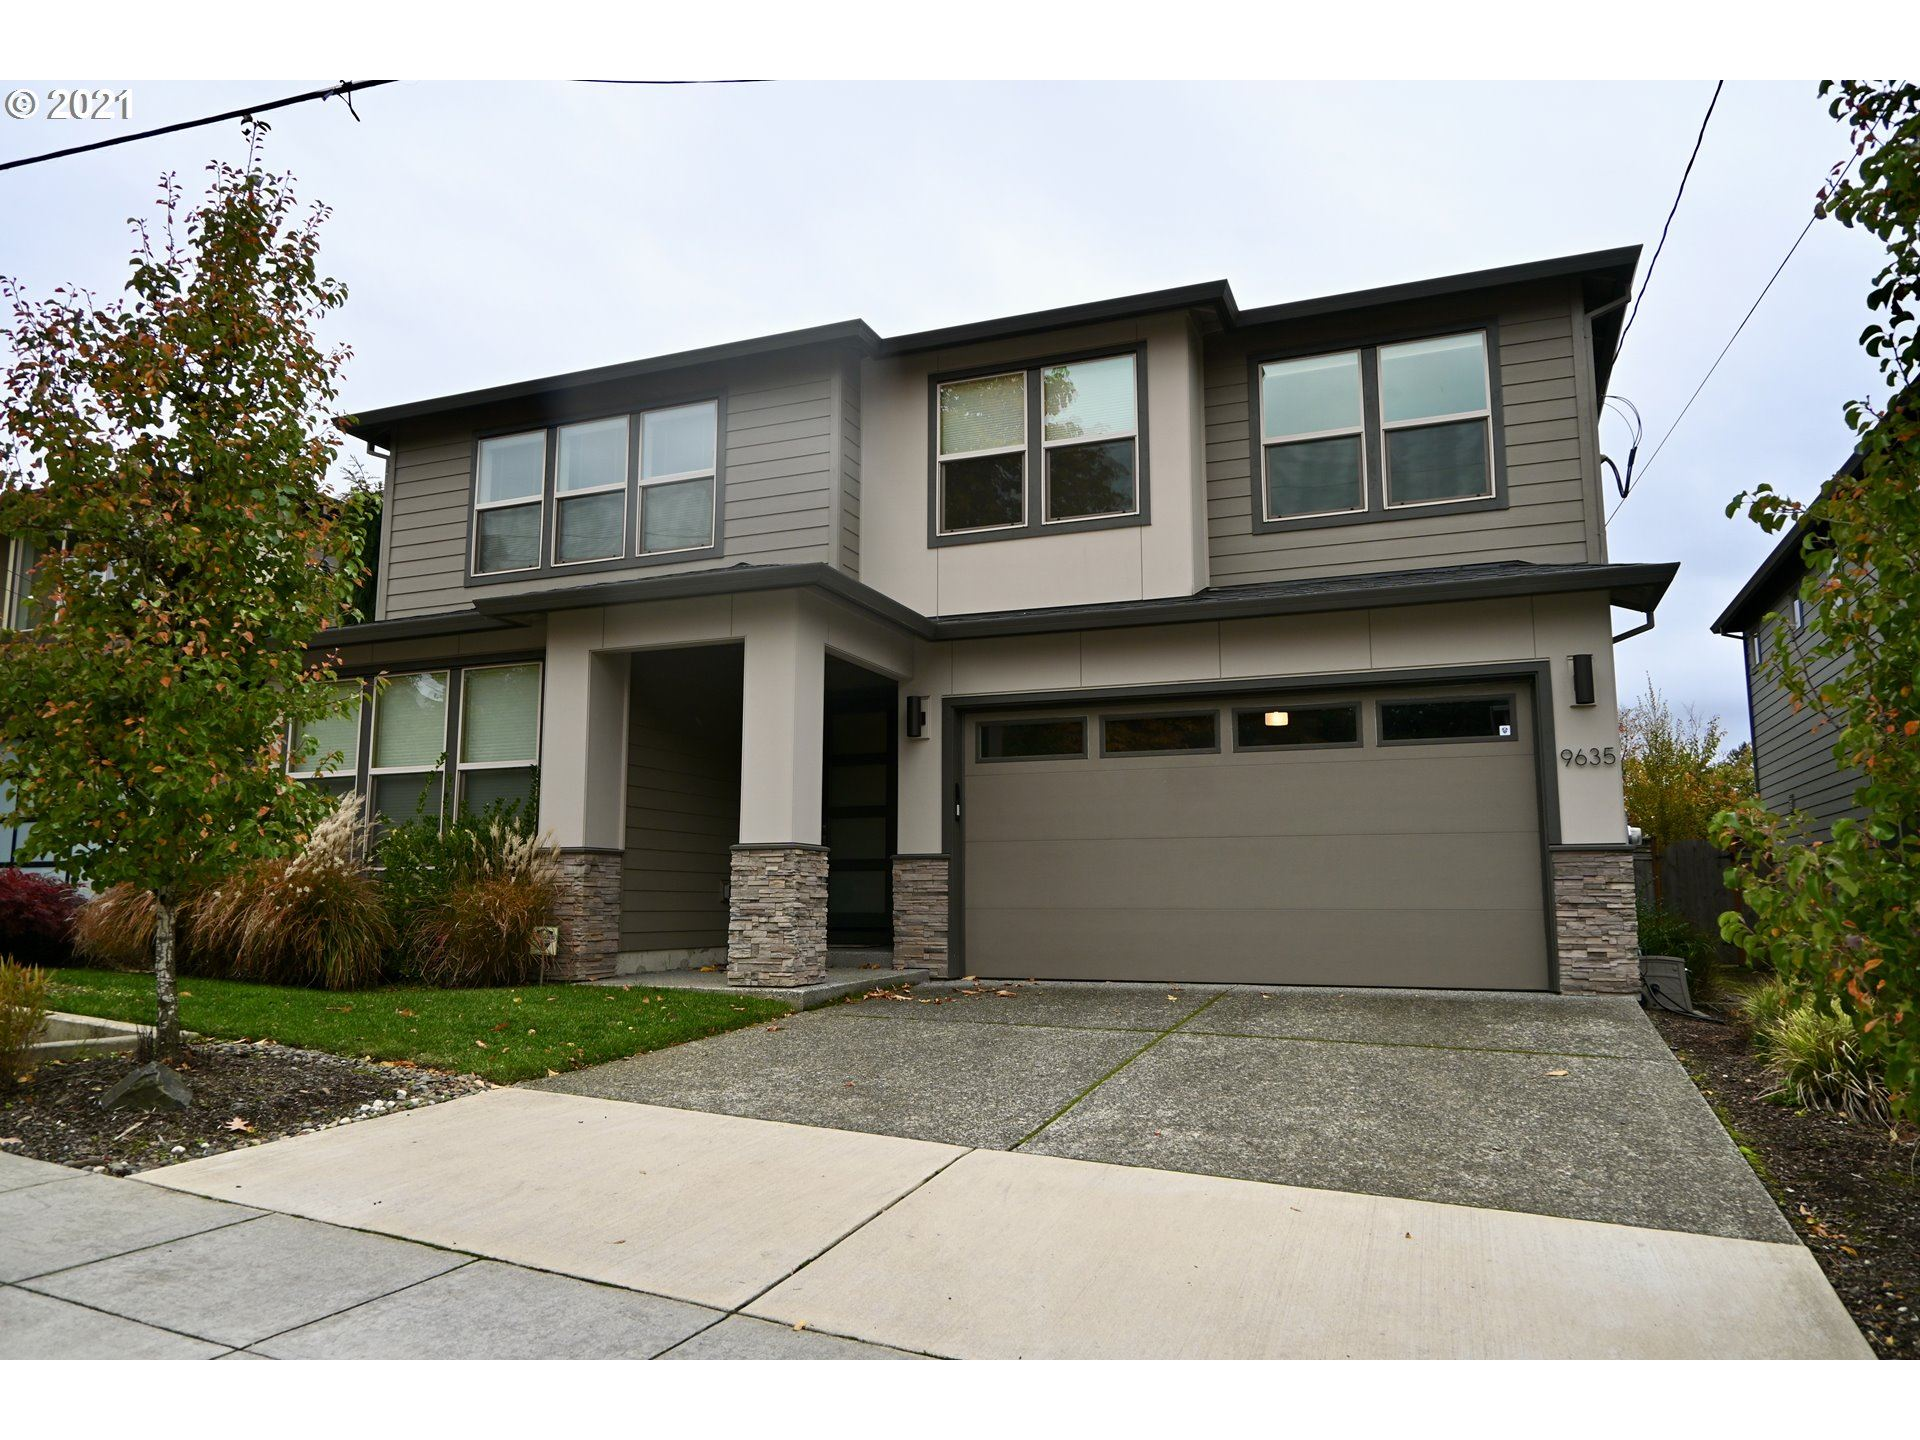 9635 SW 48TH AVE, Portland, OR 97219 - MLS#: 21593056